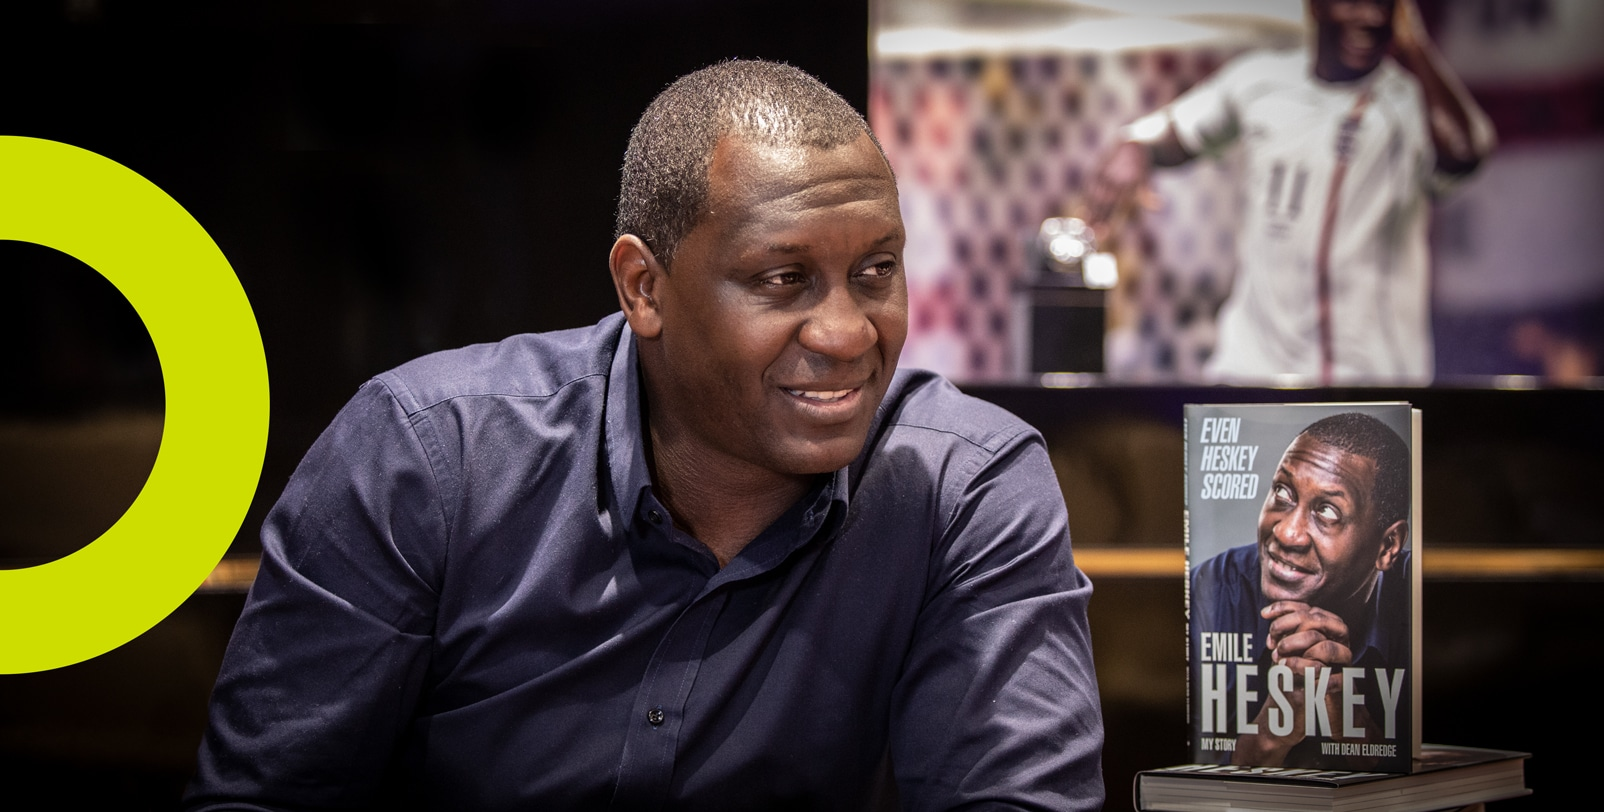 Emile Heskey Book Launch Event 2019